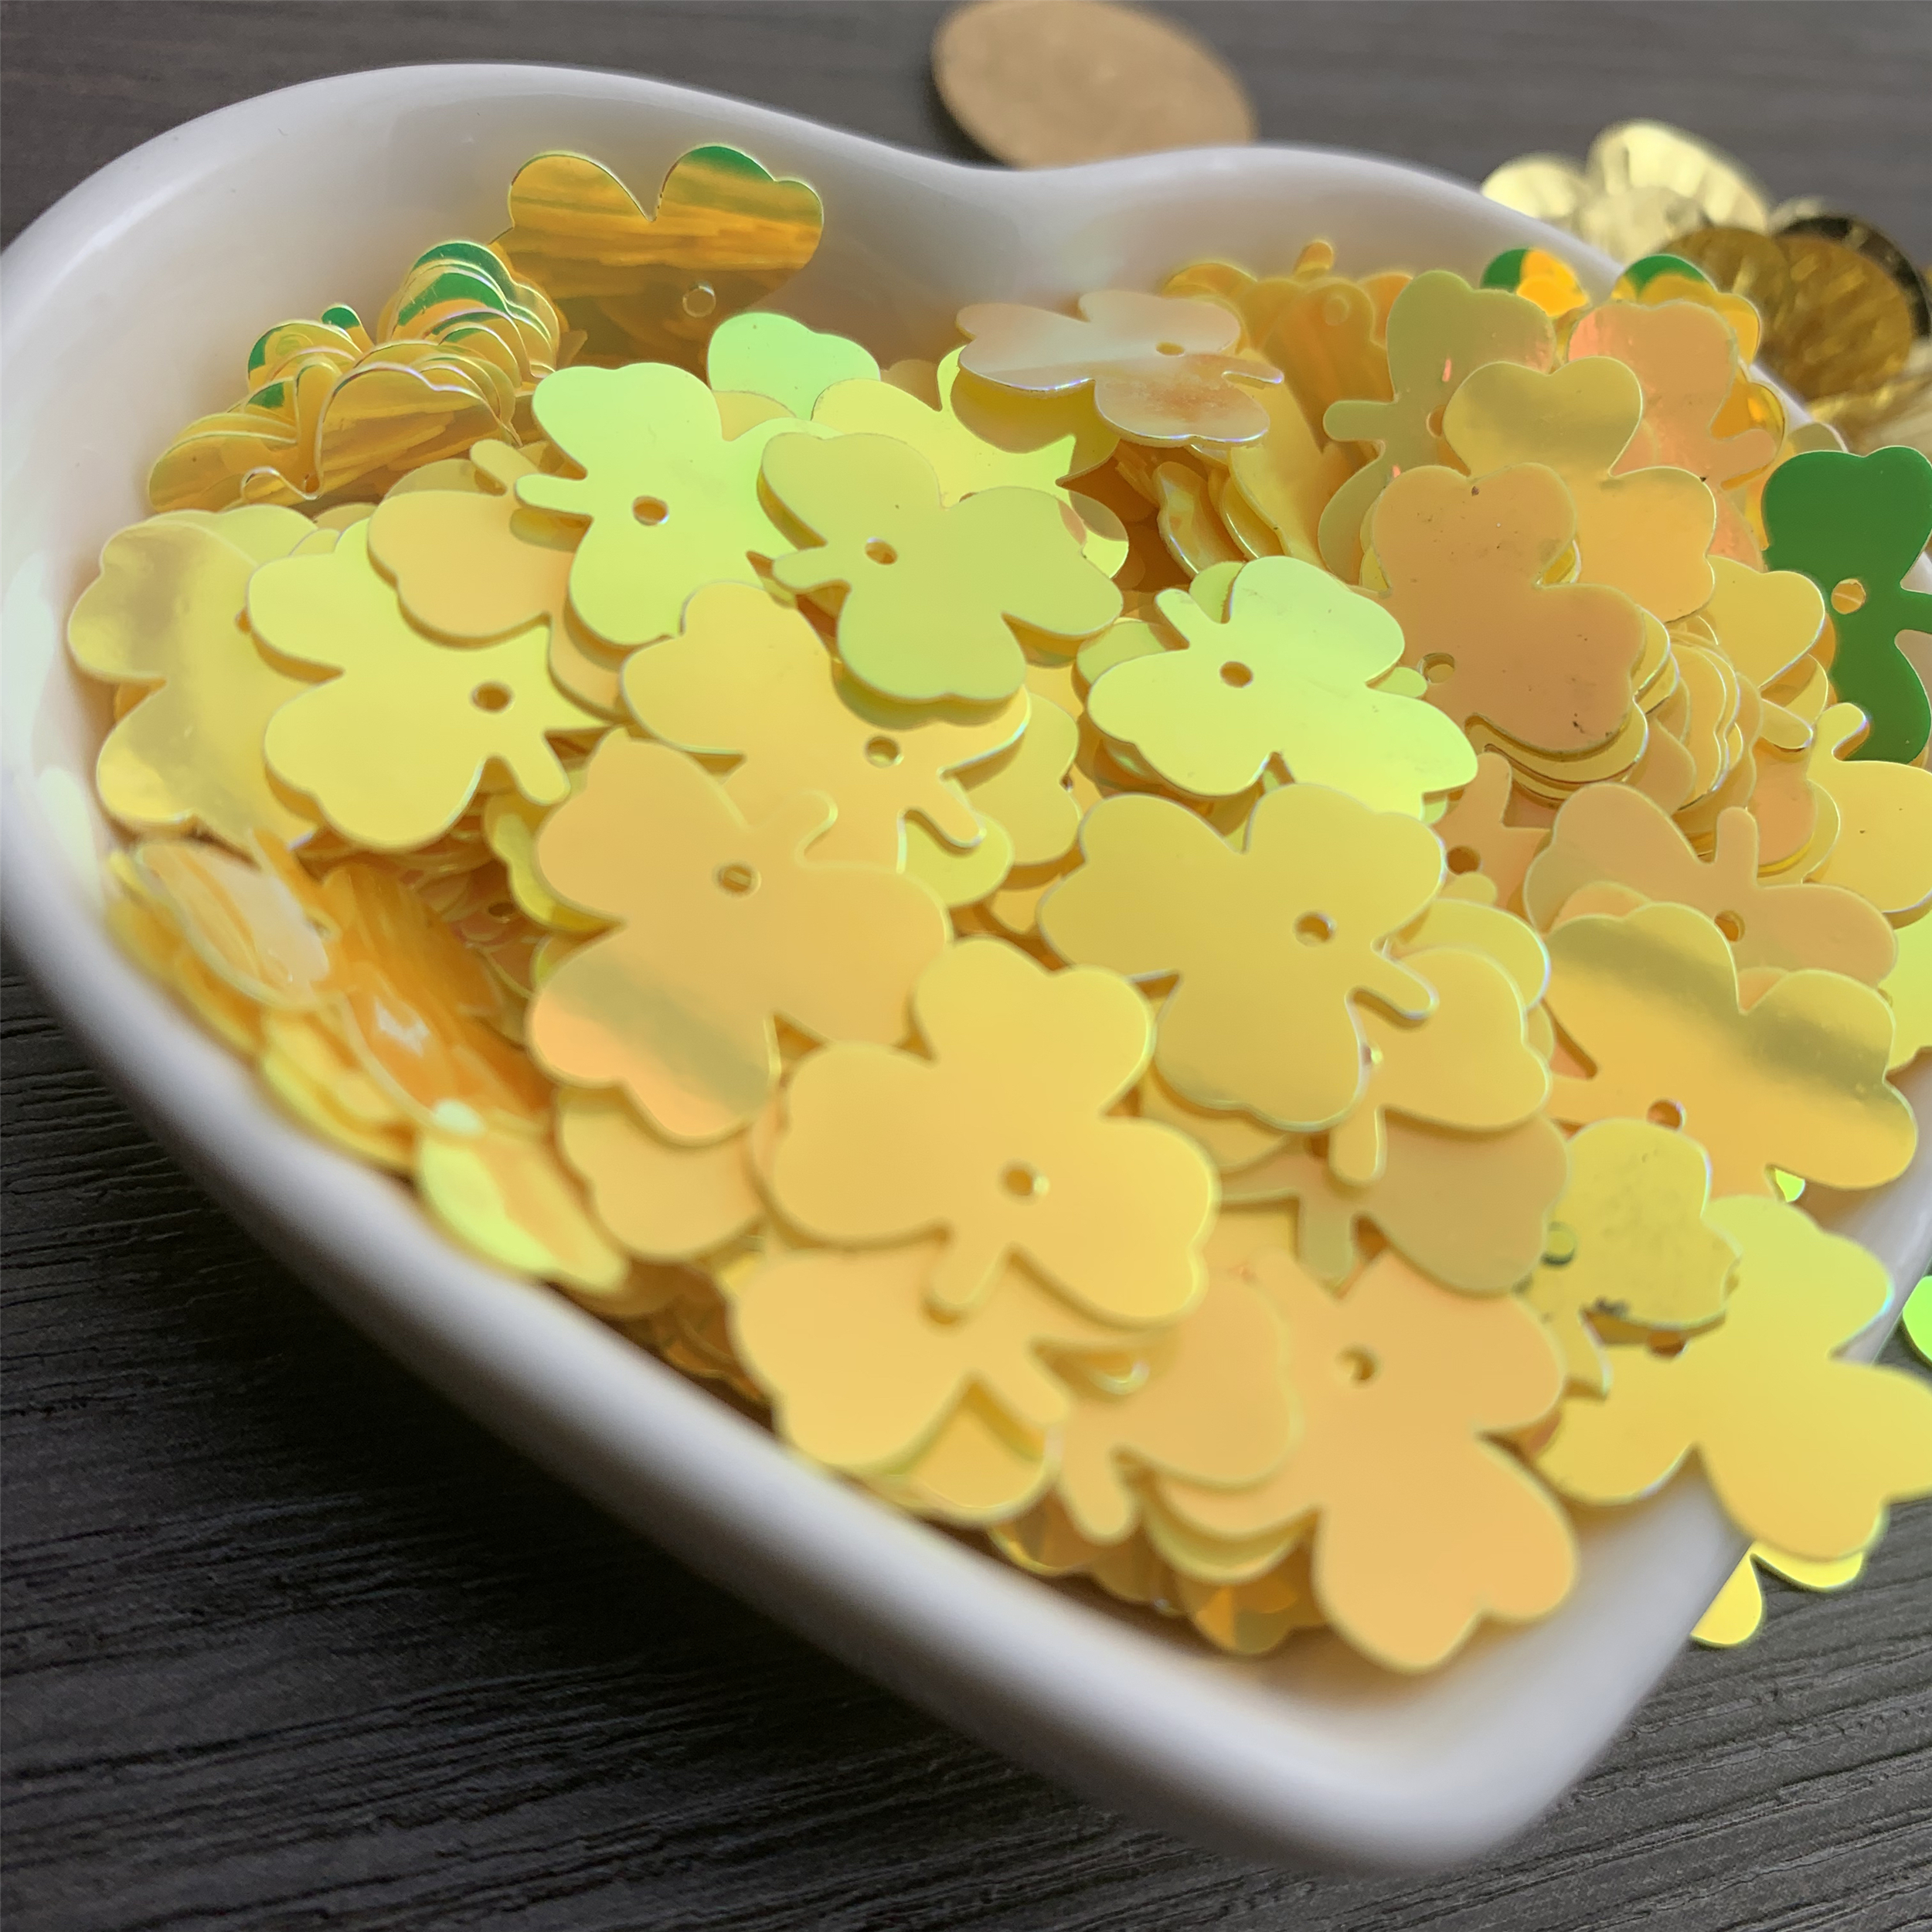 800pcs-13mm-loose-sequins-lucky-grass-shape-pvc-sequins-diy-dress-clothing-accessories-sewing-embellishment-clothing-craft